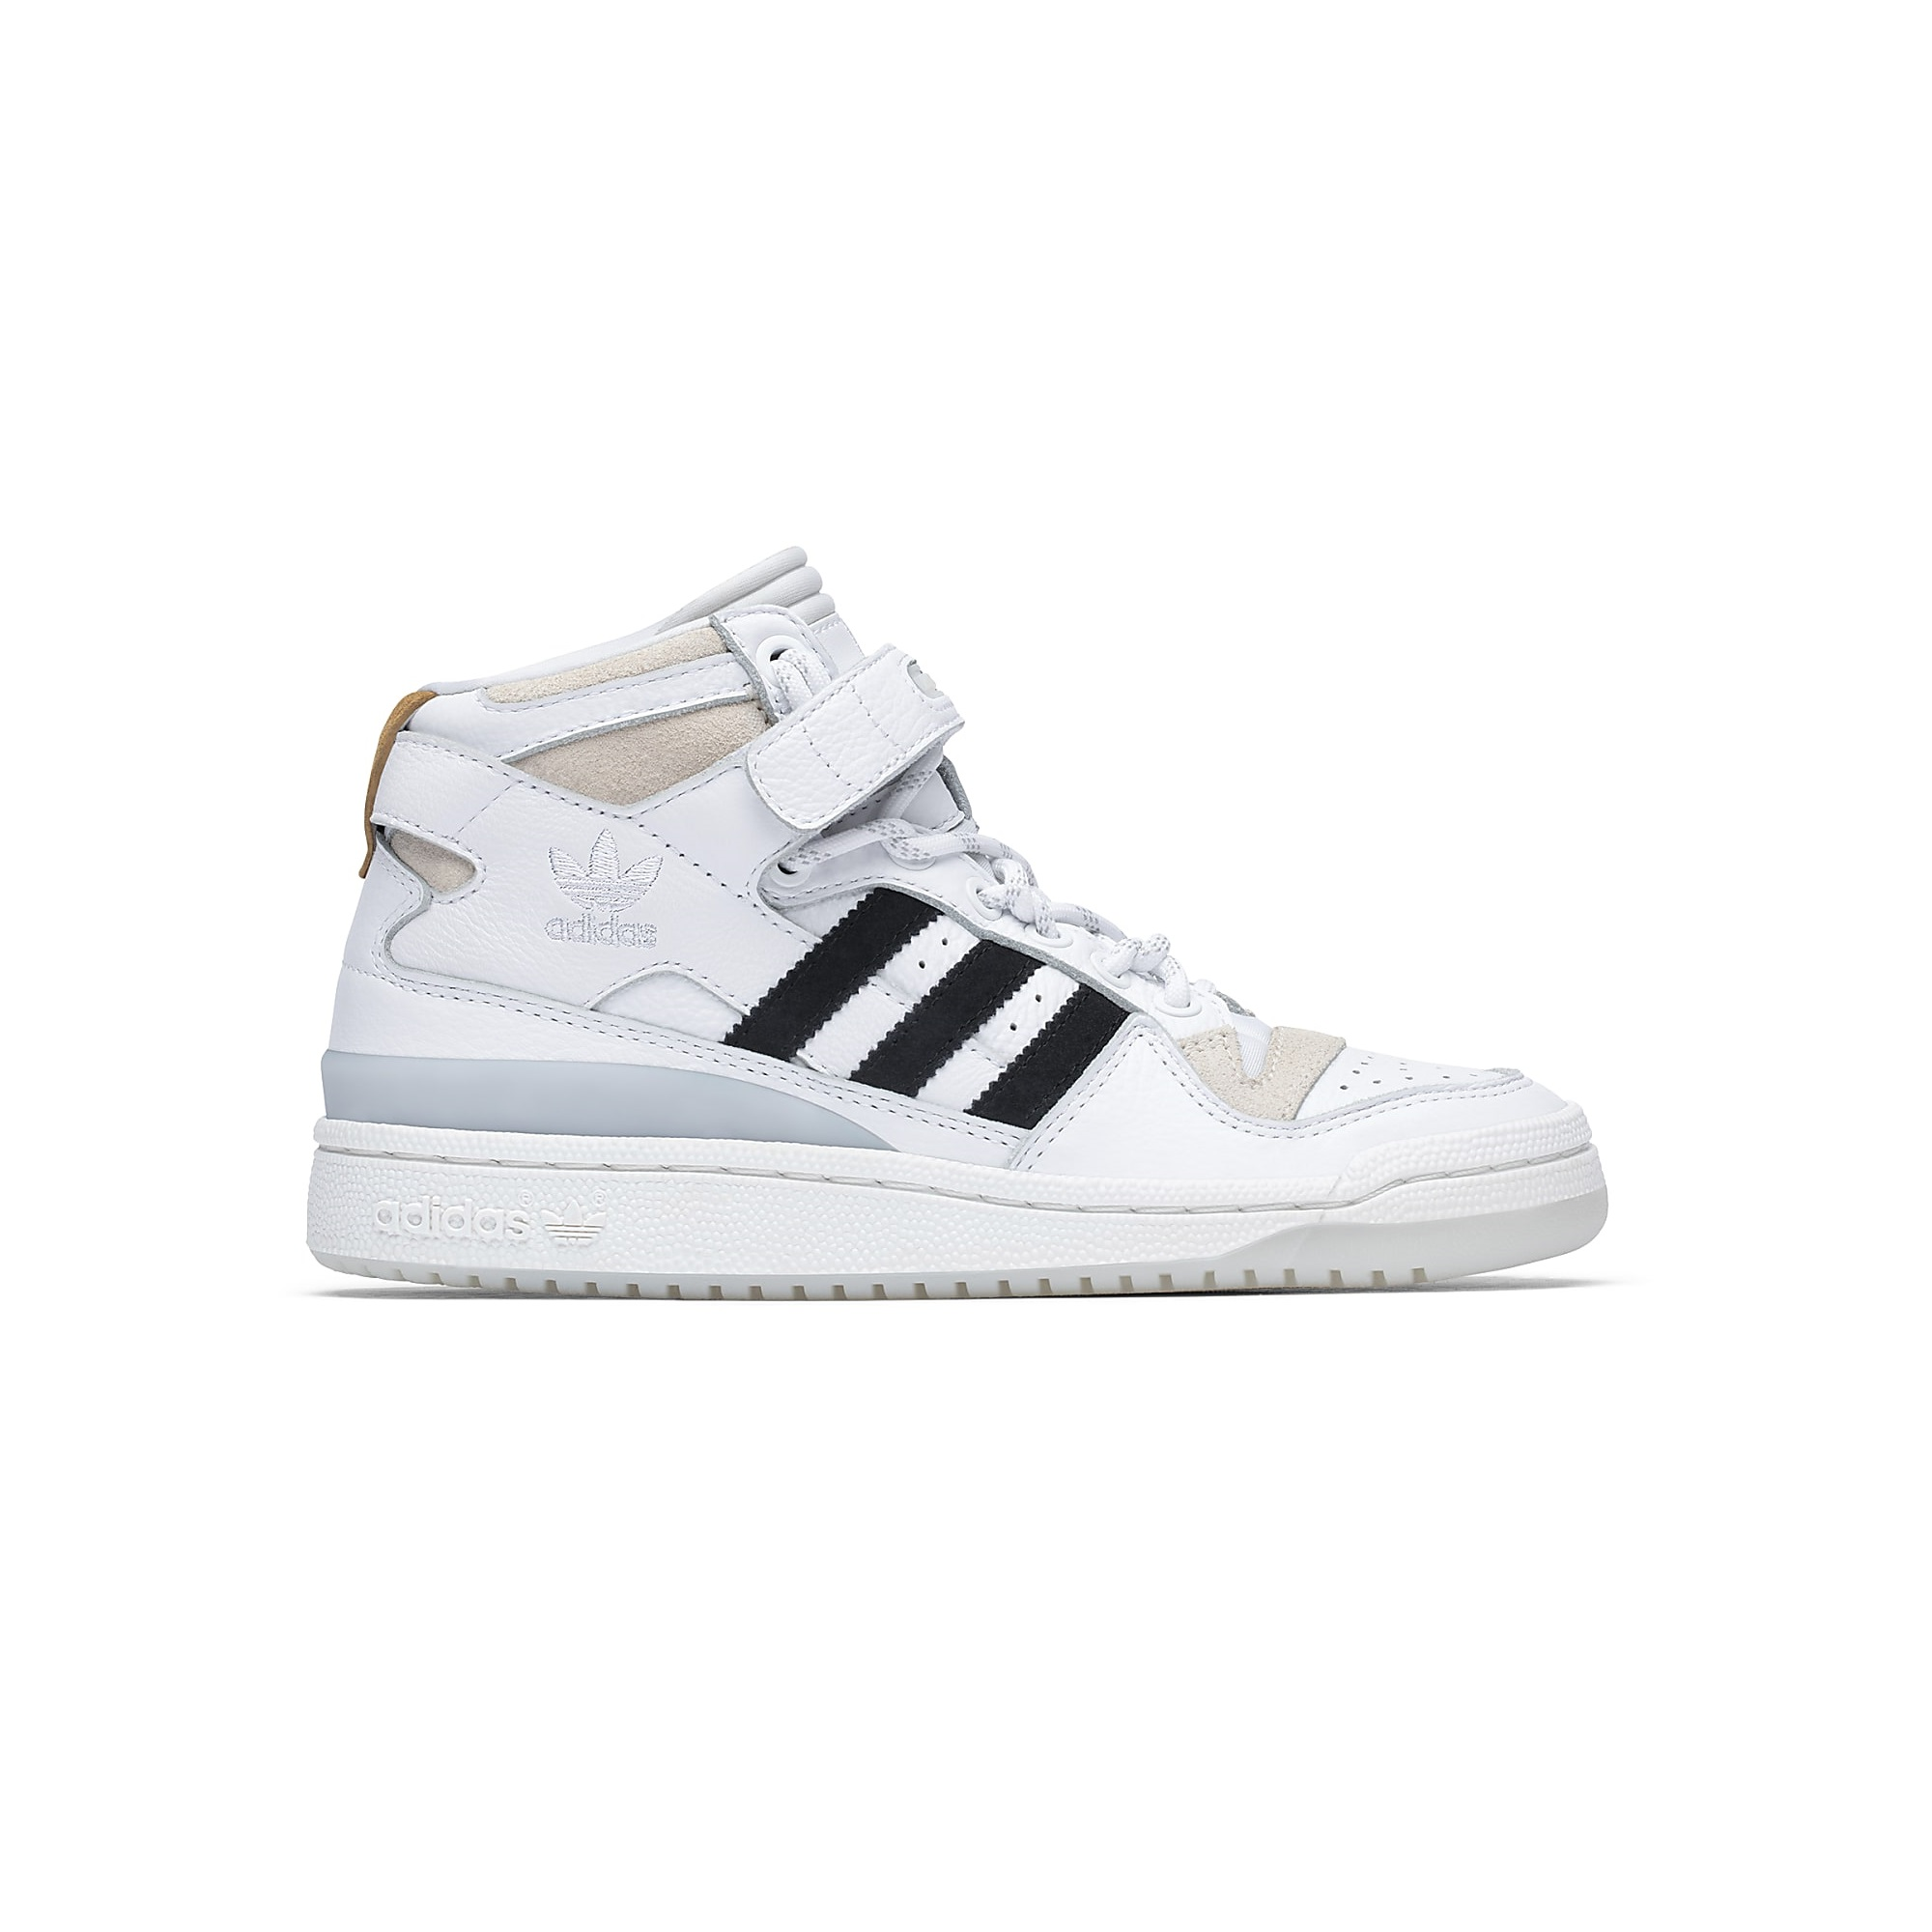 Beyonce Ivy Park x adidas Originals Forum Mid 'Cloud White'}